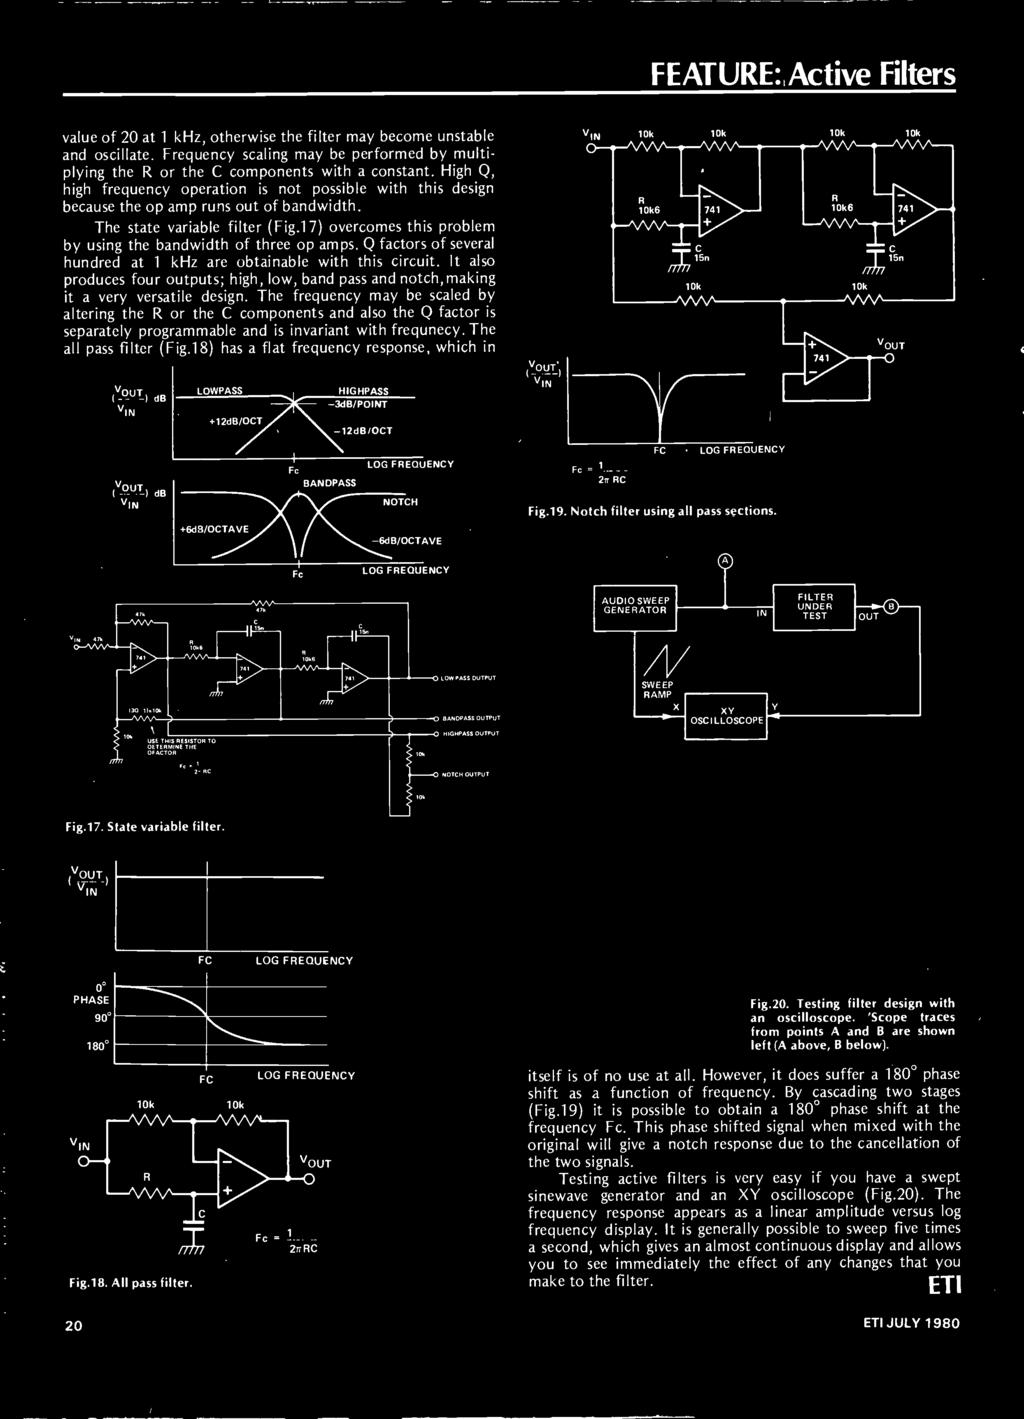 Stereo Spacecraft History Of Image Co Ordinator Active Filters Four Digit Frequency Counter Meter Ttl Cmos Schematic The May Be Scaled By Altering R Or C Components And Also